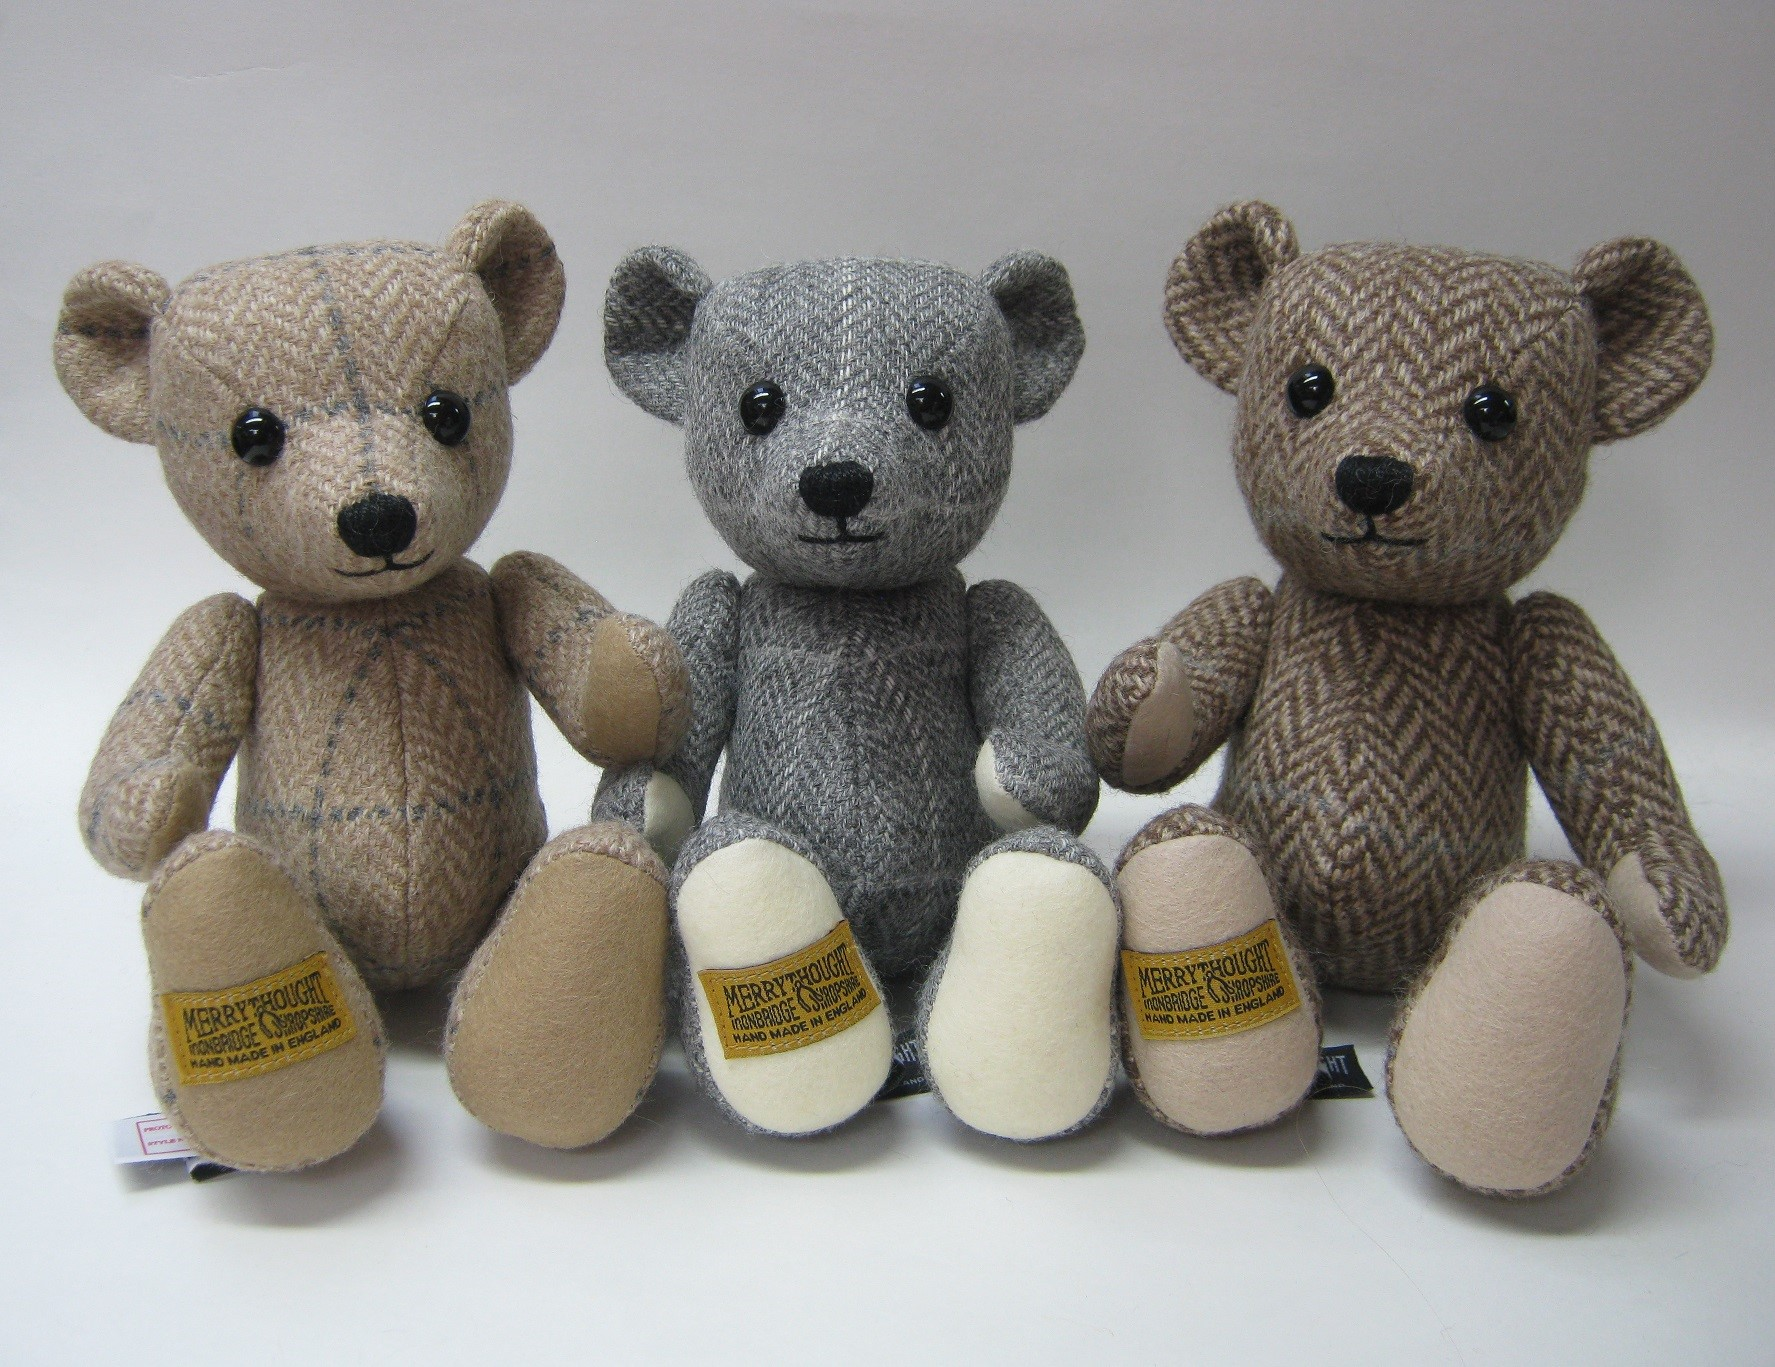 Alpaca Tweed teddy bears made for us by Merrythought Bears.